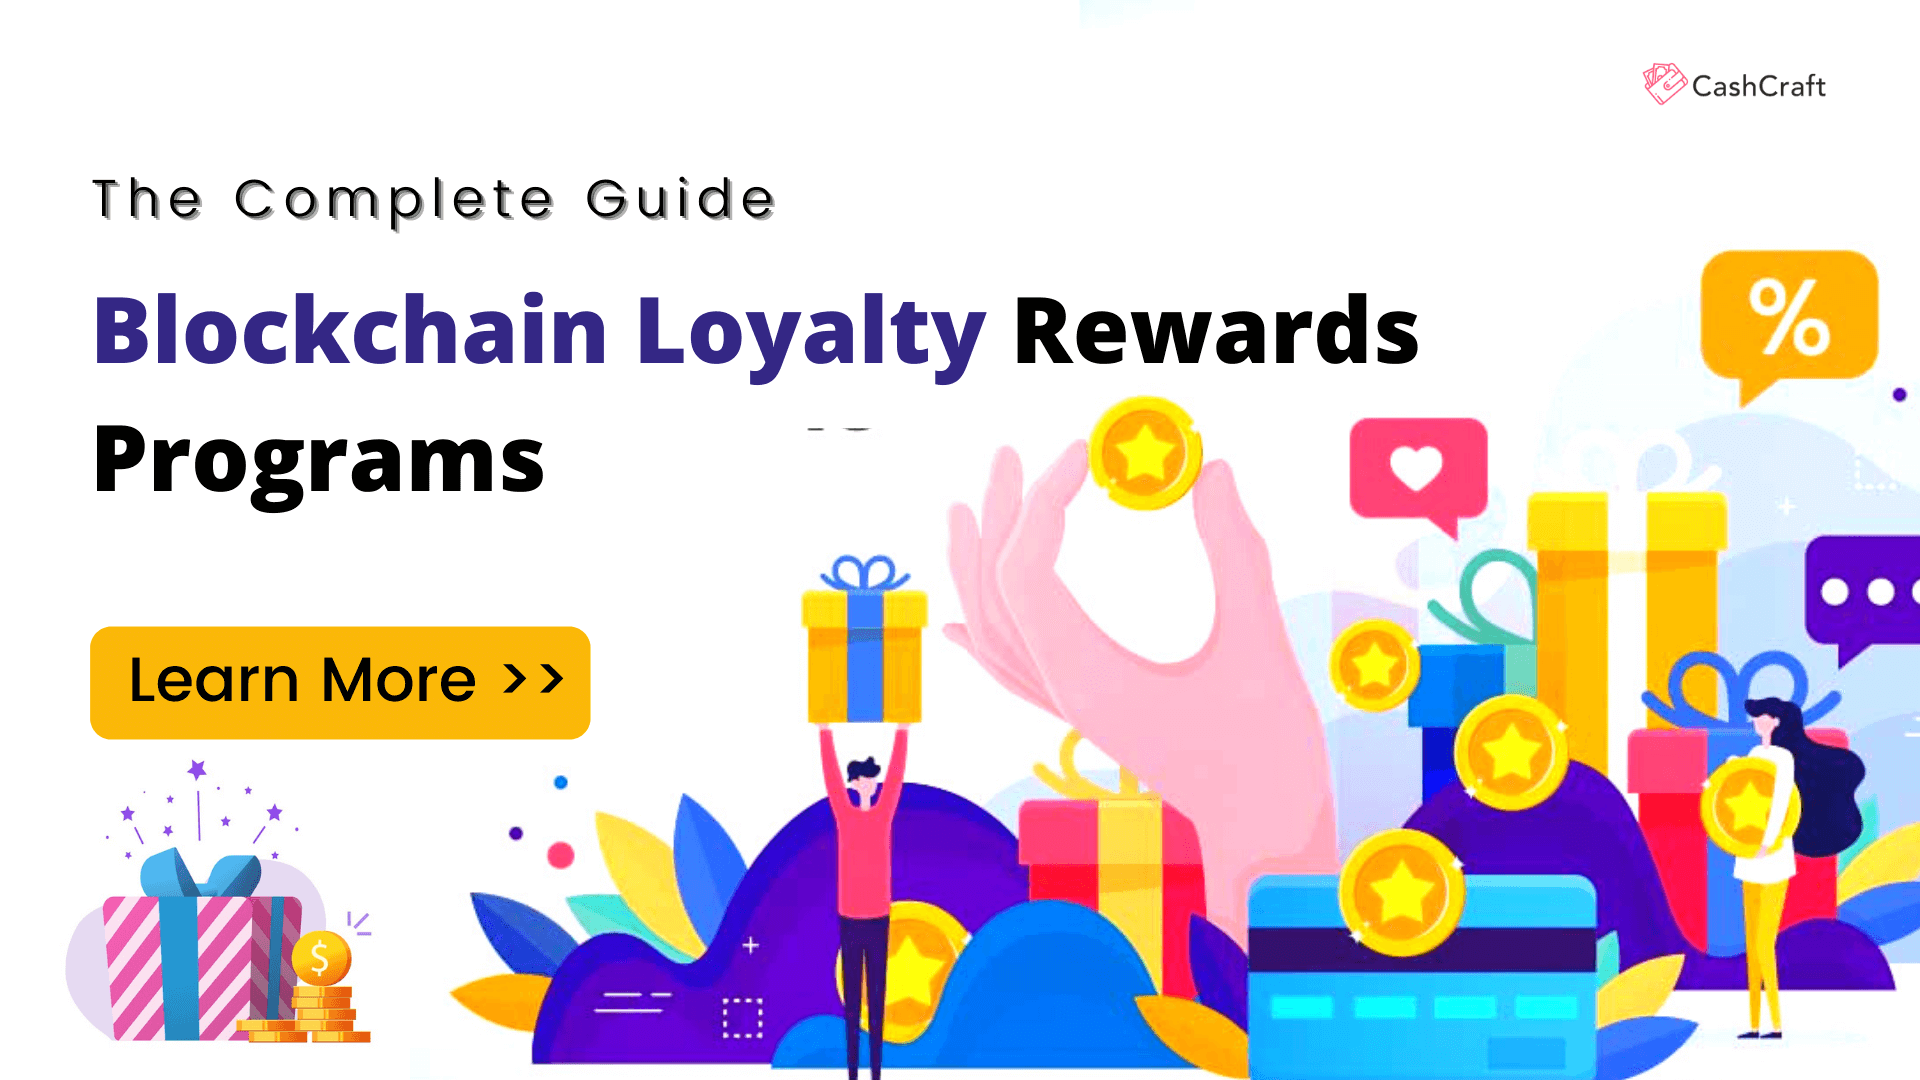 The Complete Guide To Blockchain Loyalty Rewards Programs